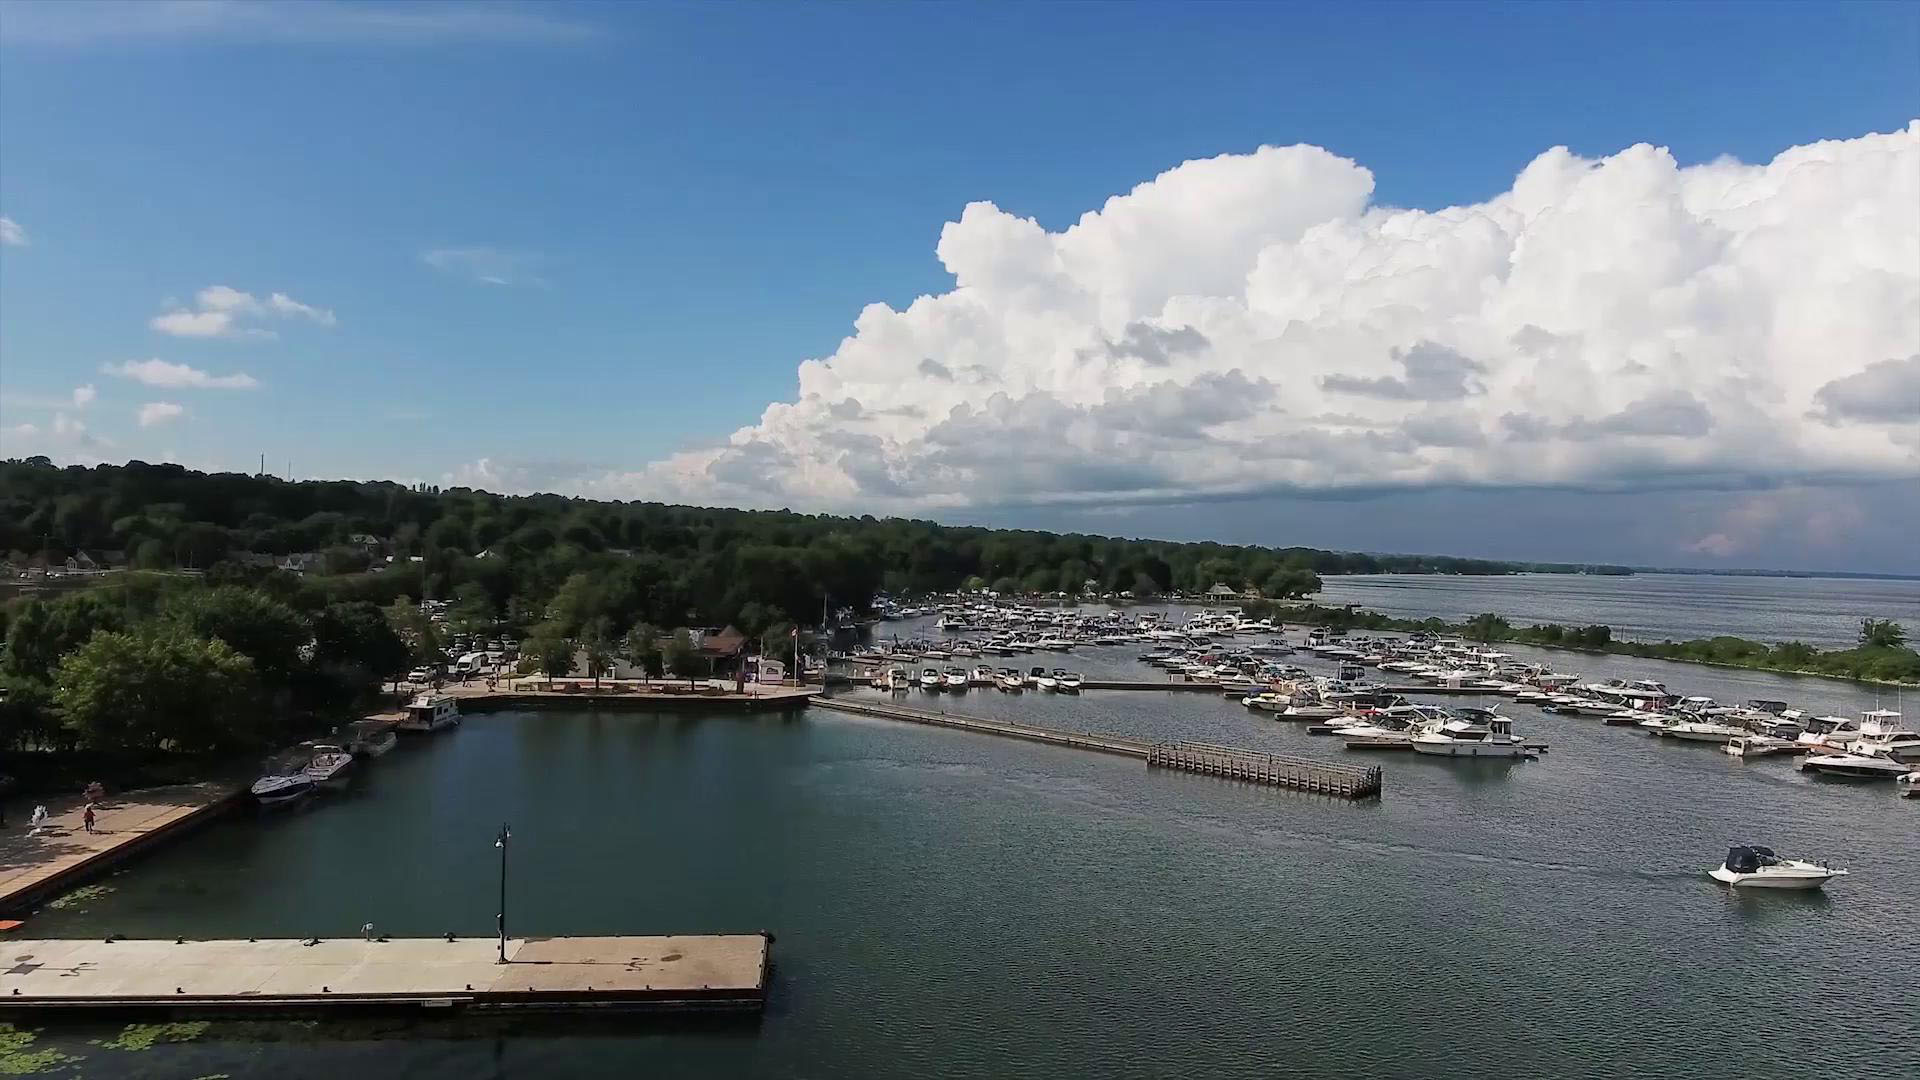 Overhead view of the Port of Orillia